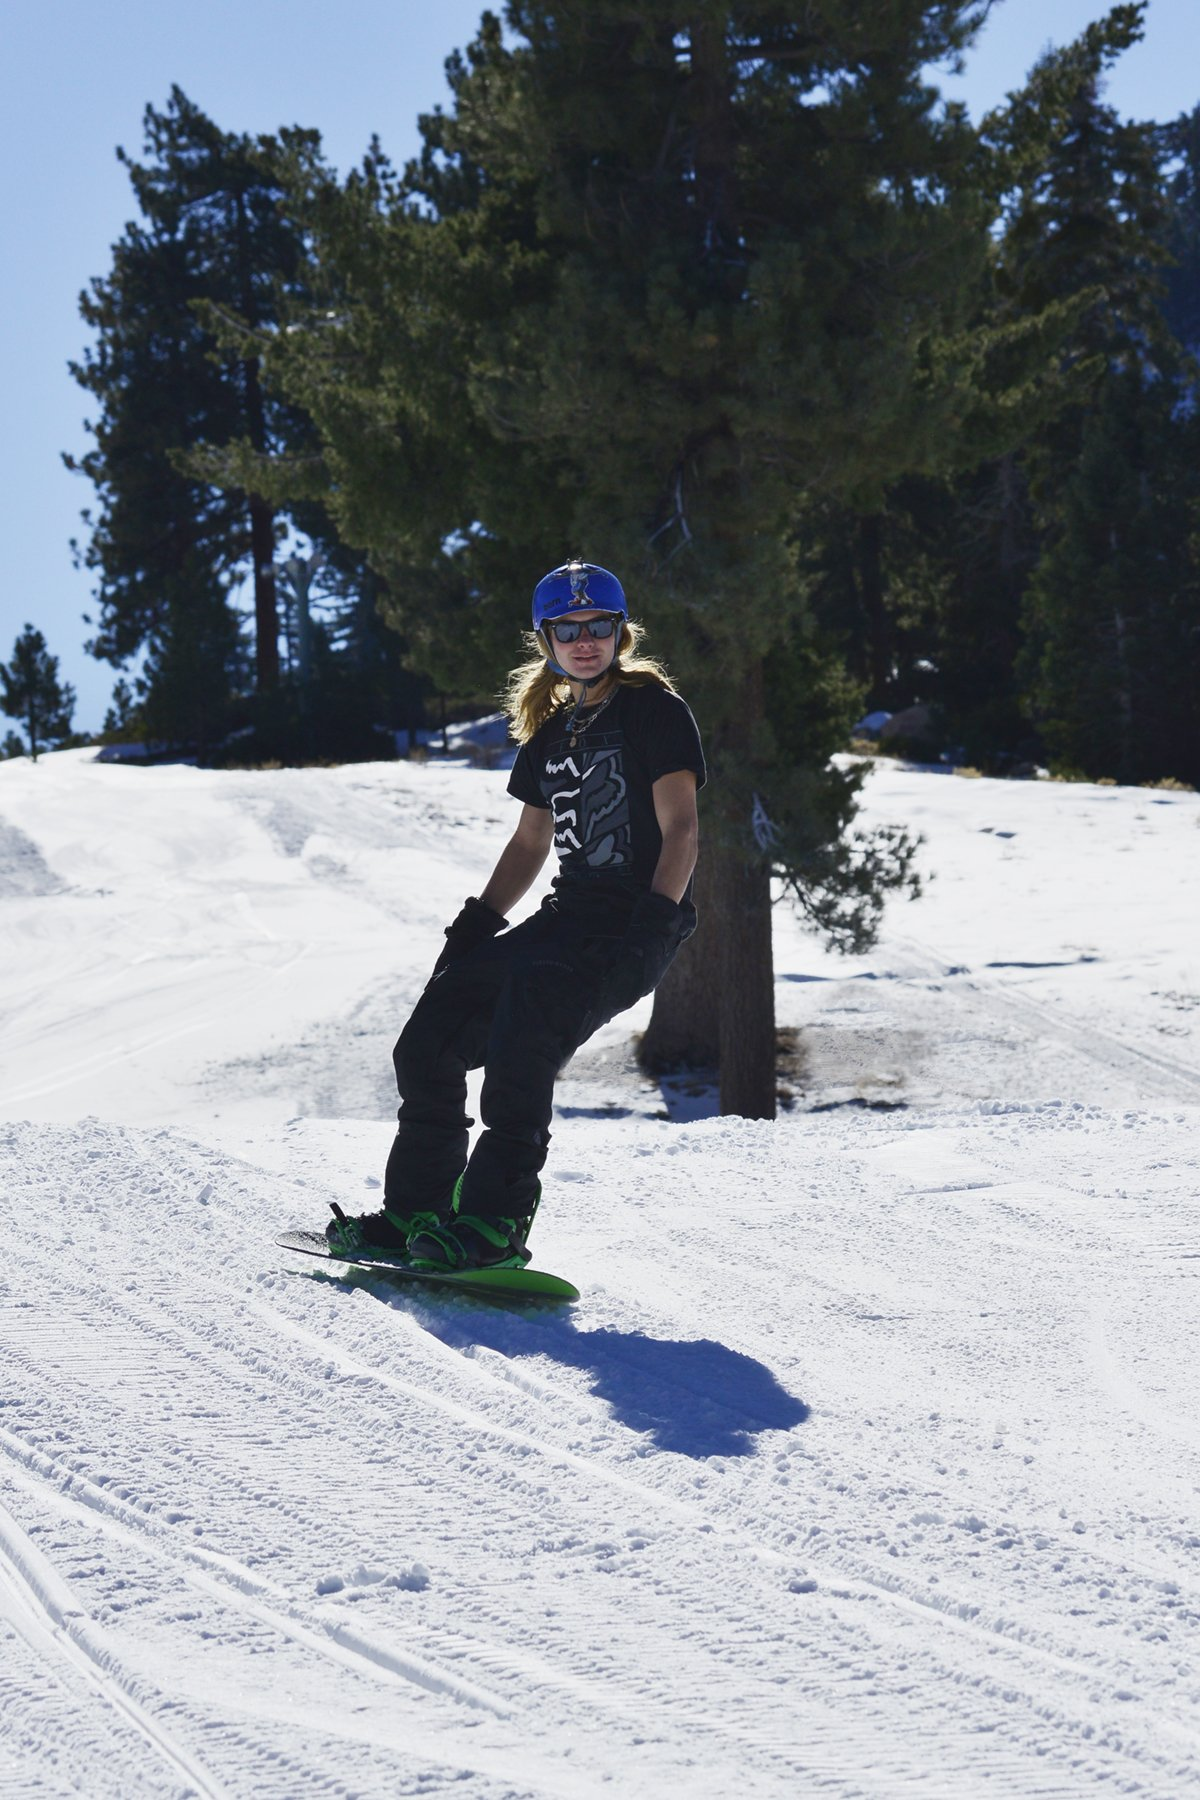 Action shot of snowboard heading dowhill with a black t-shirt on